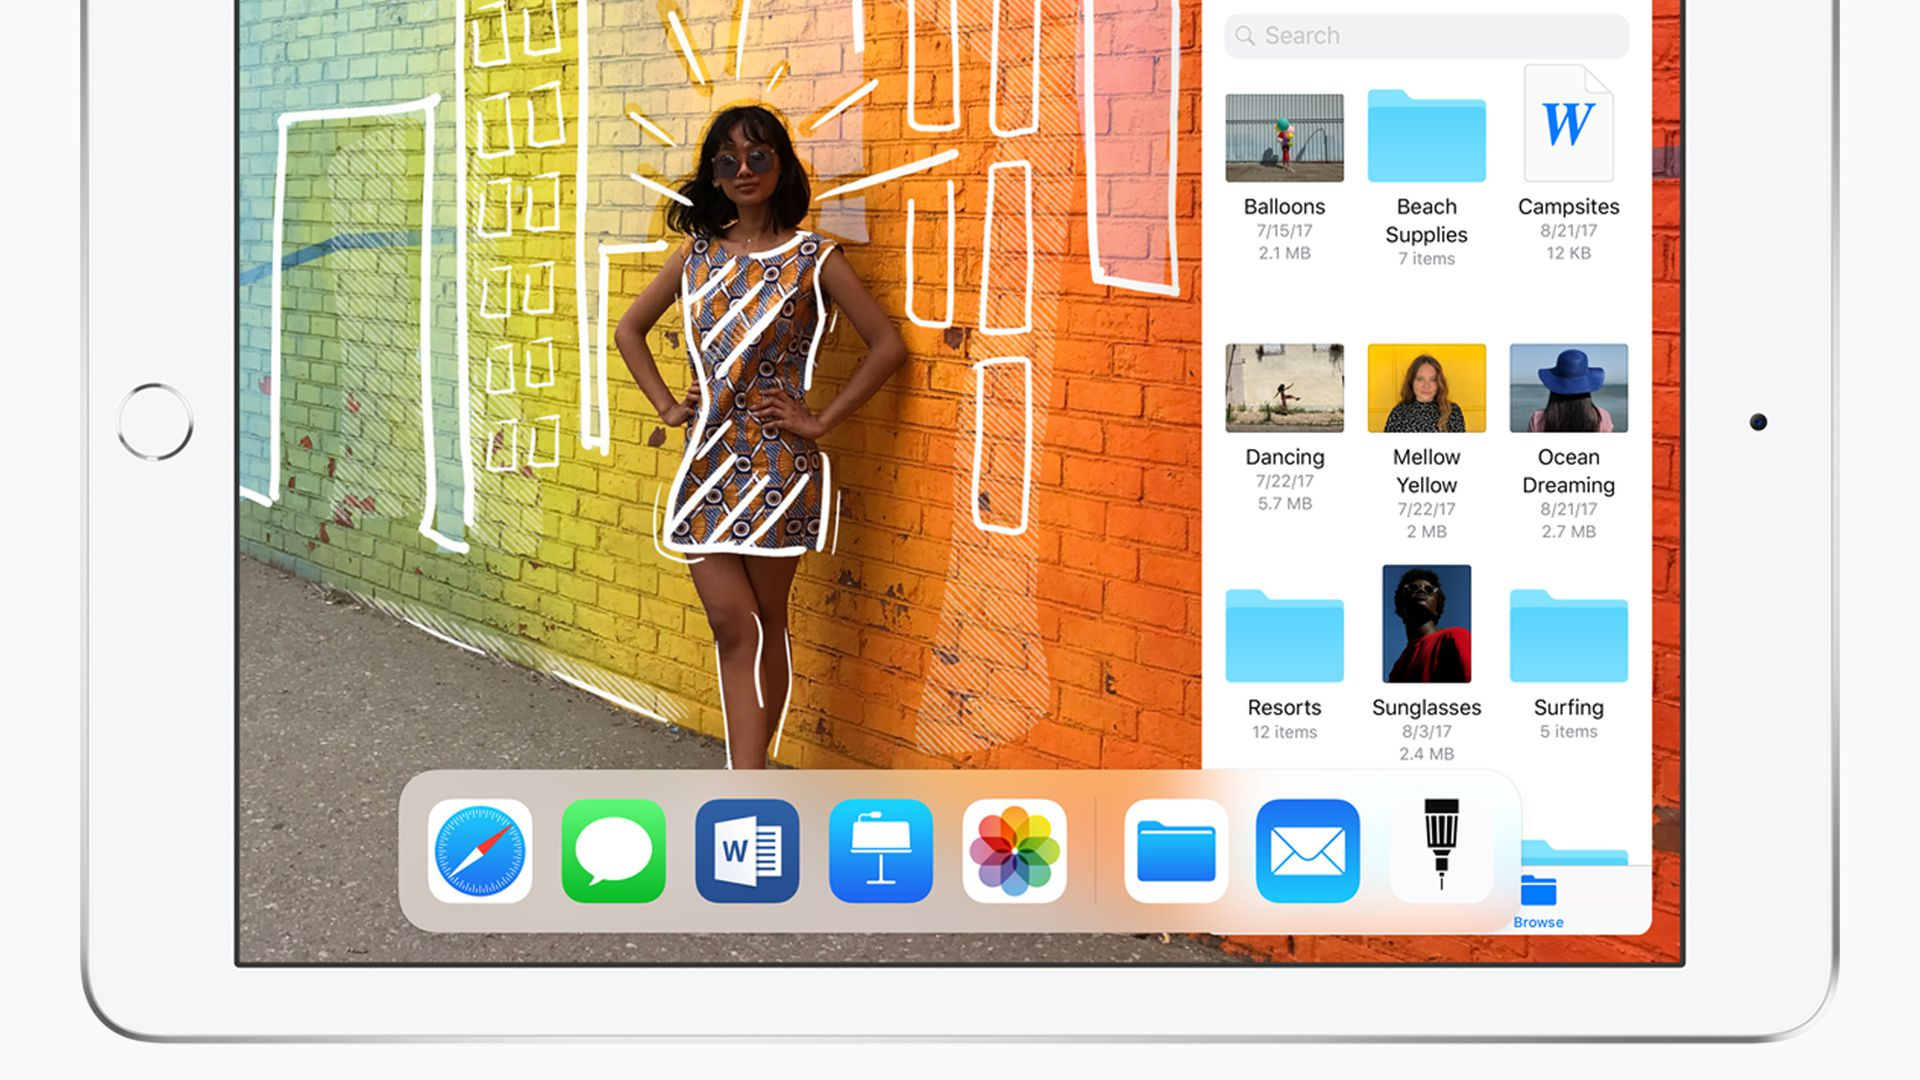 The new low-end iPad features Apple Pencil support